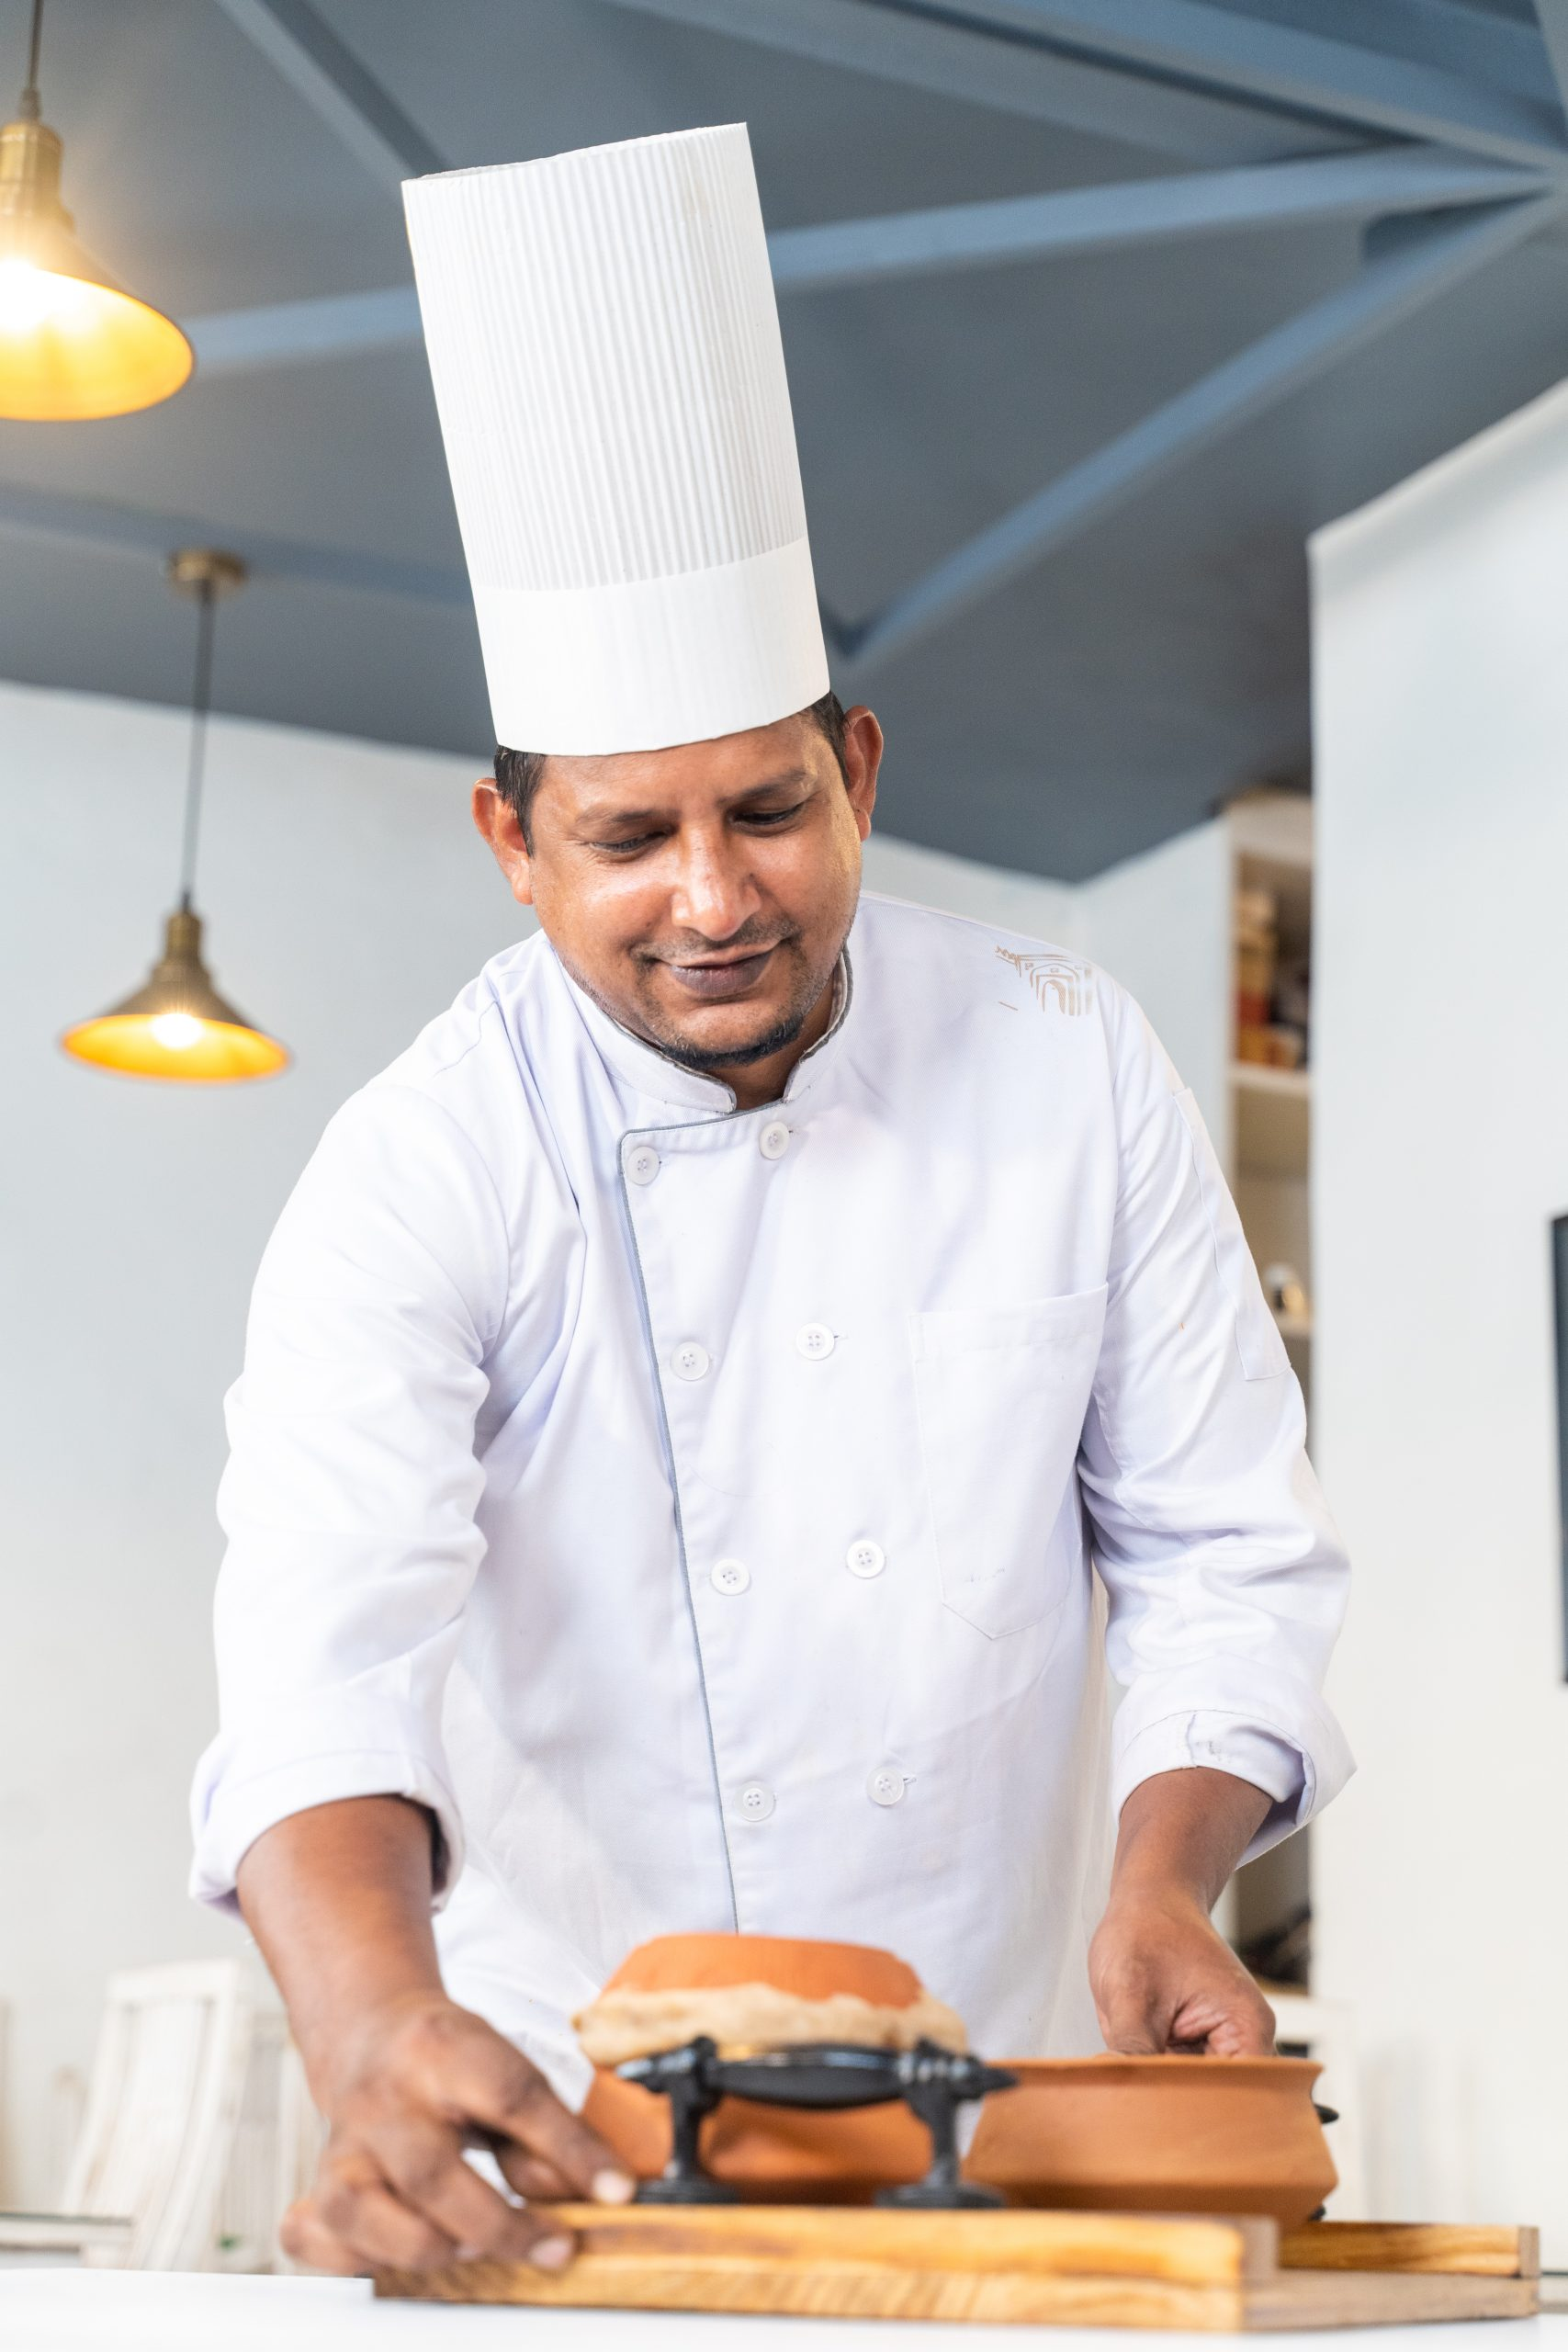 Chef serving the food